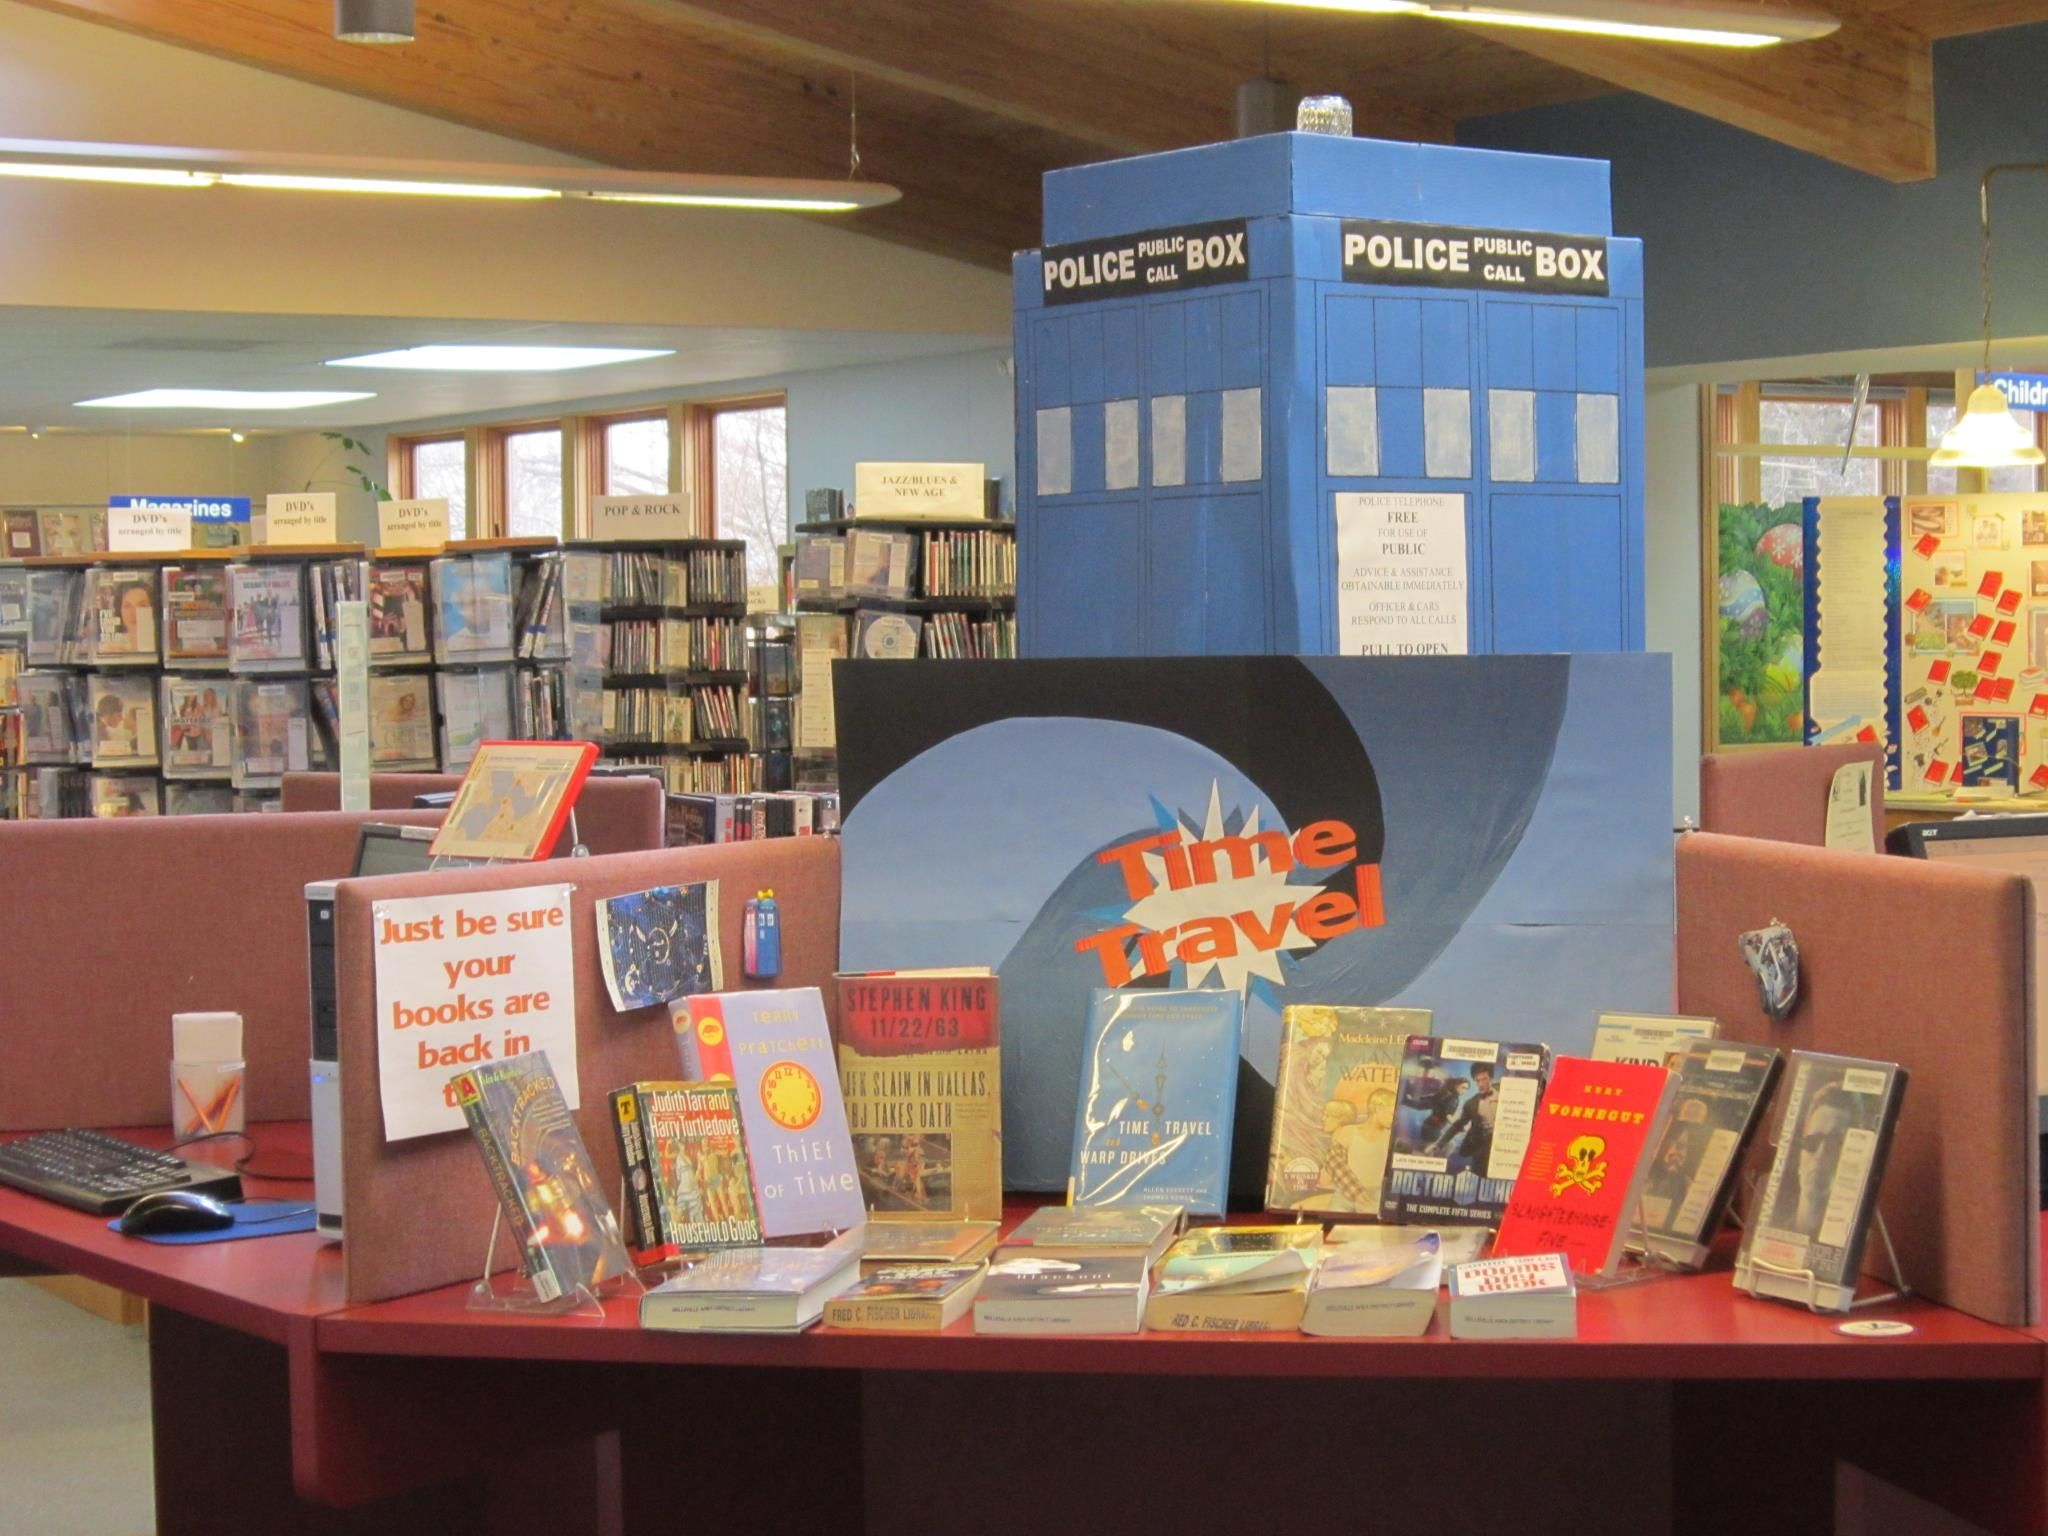 Index of library images illusions best - 464 Best Bulletin Boards And Library Displays Images On Pinterest Library Ideas Library Bulletin Boards And Library Books